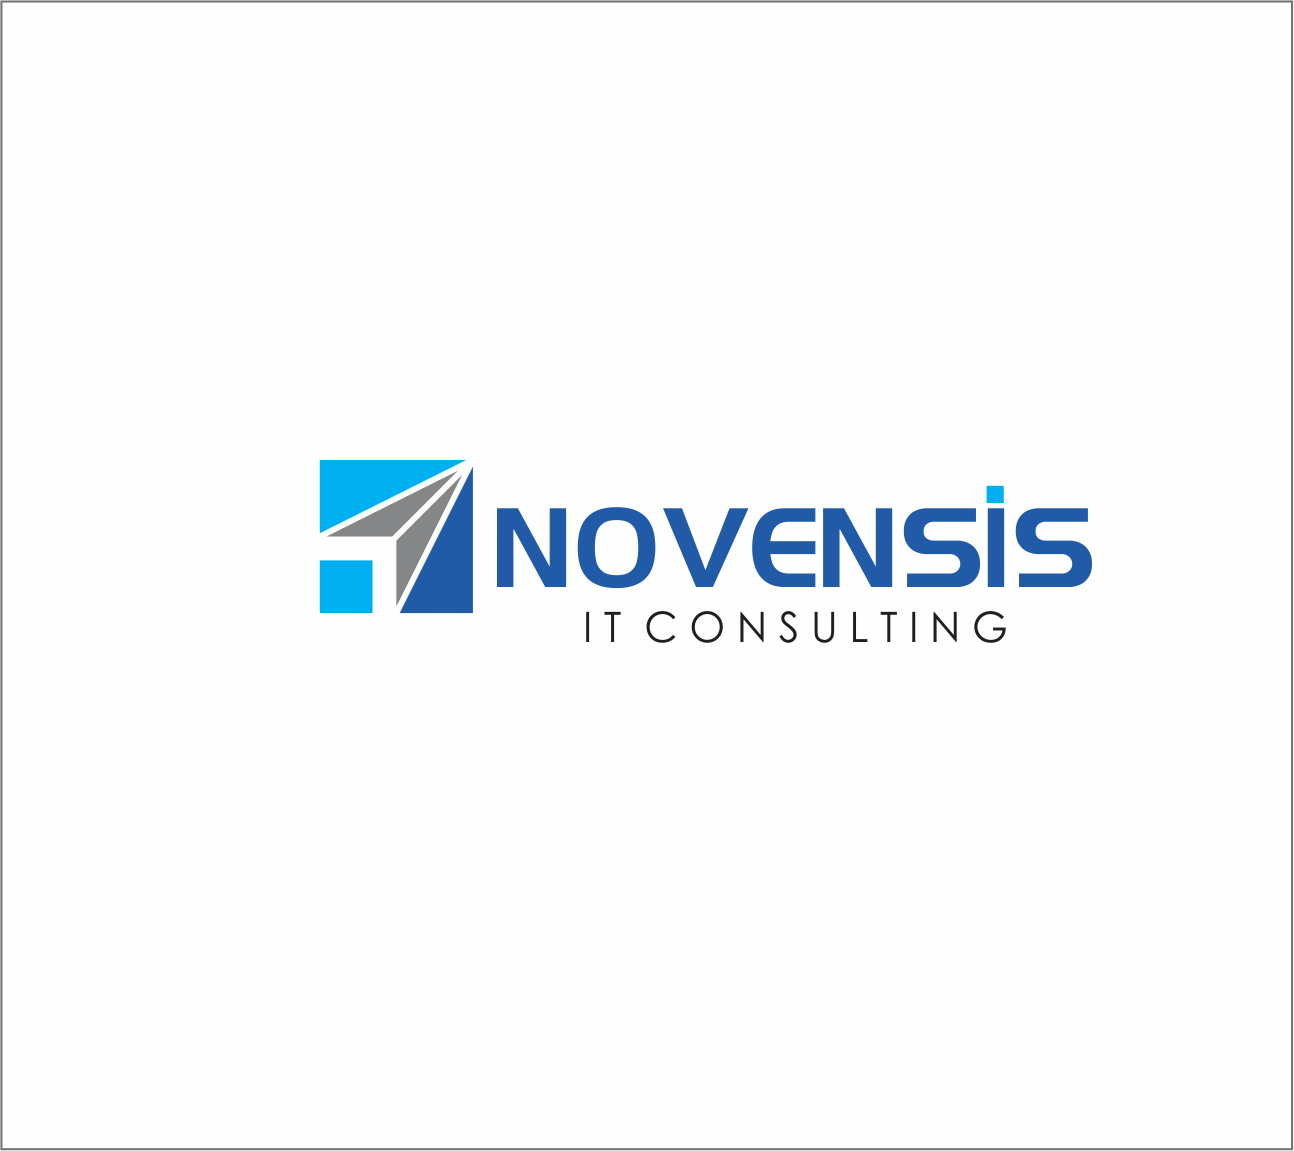 Logo Design by Armada Jamaluddin - Entry No. 160 in the Logo Design Contest Novensis Logo Design.